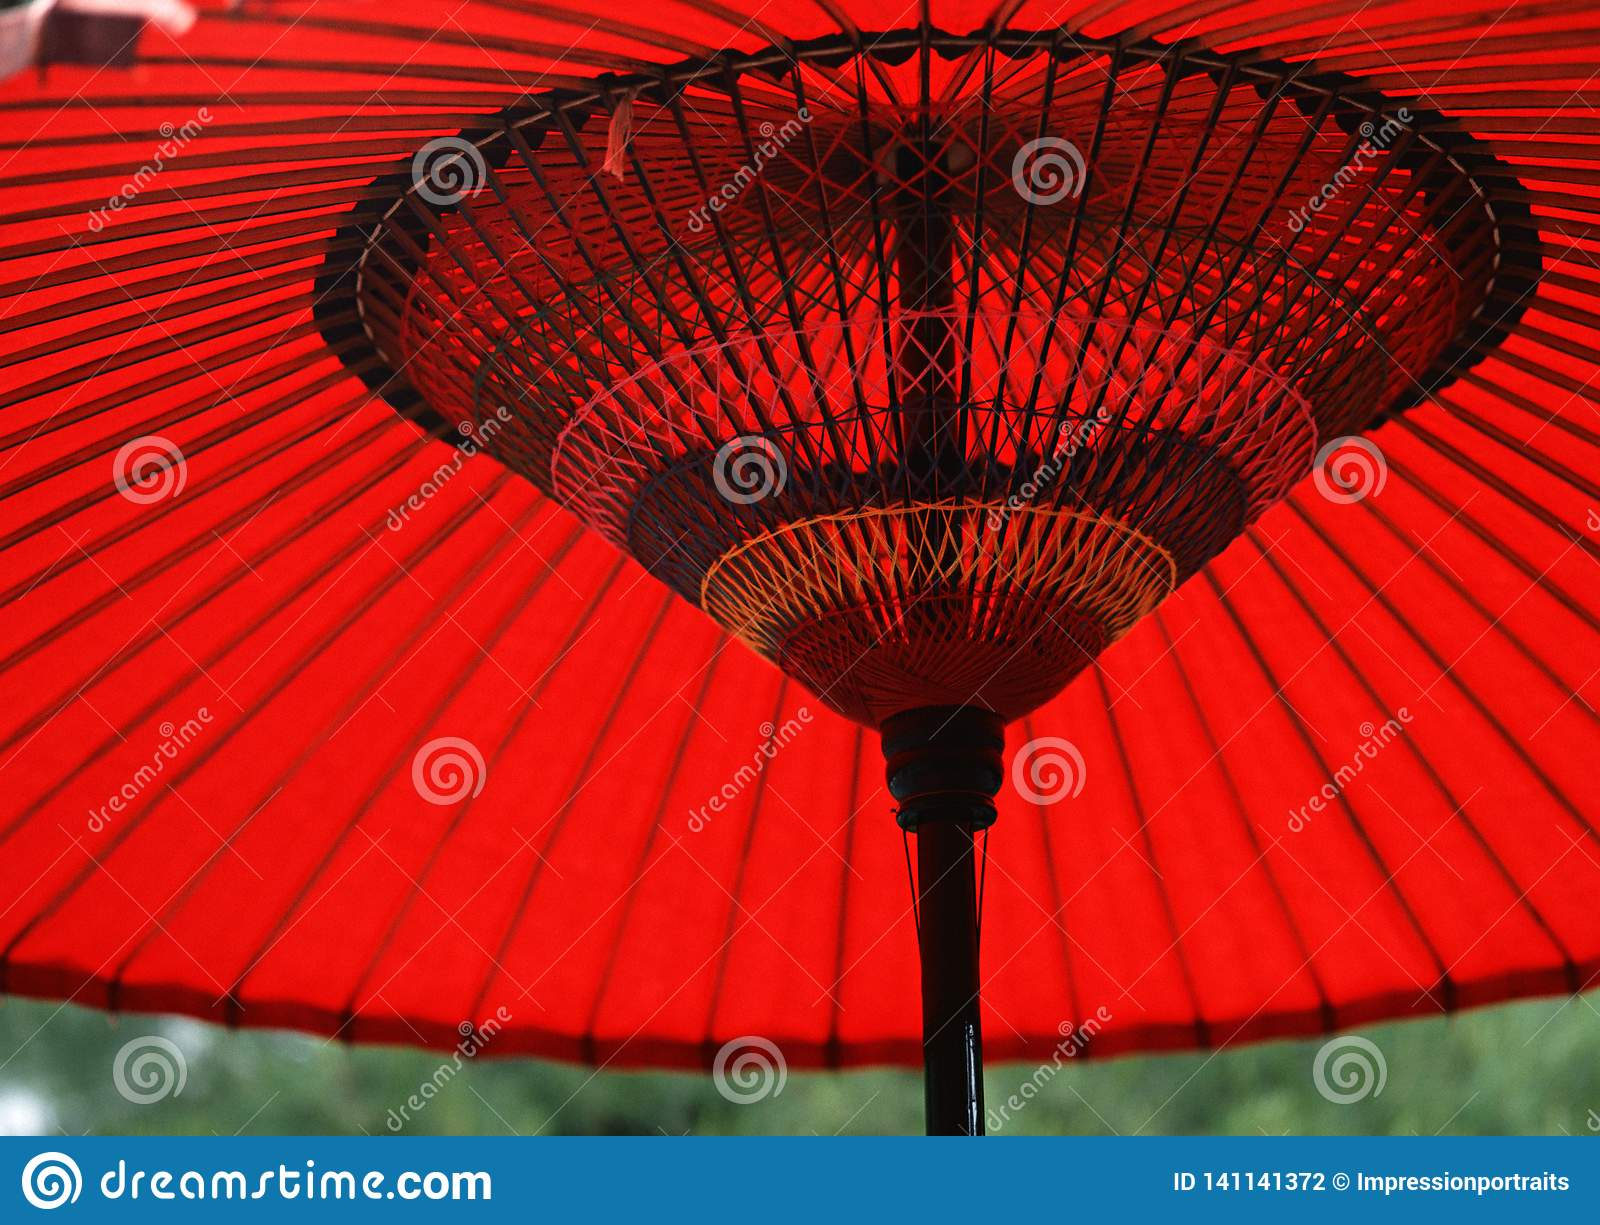 A Japanese red and black wooden umbrella background